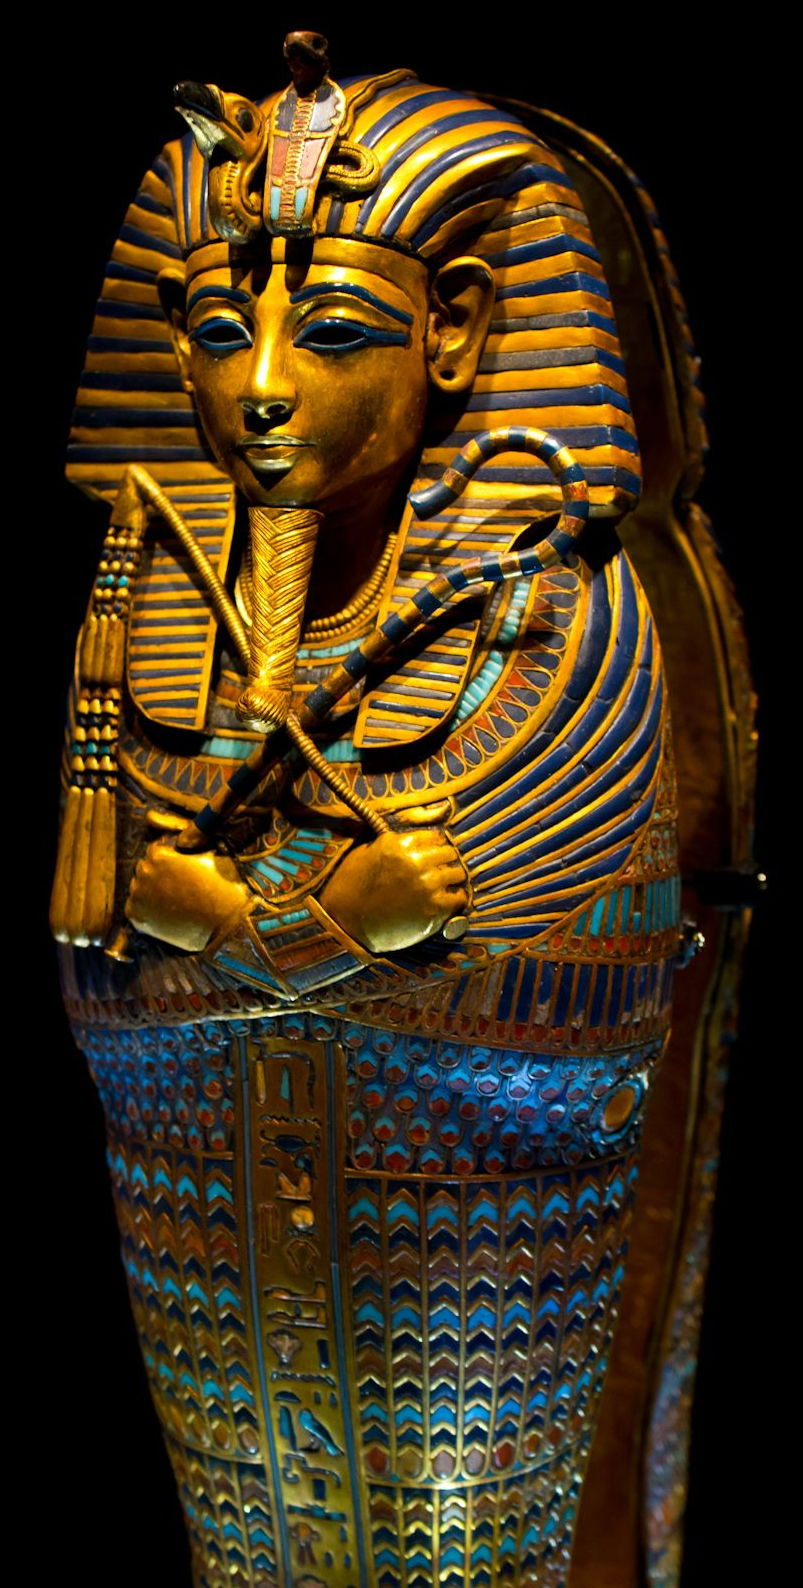 Young King Tut's coffin